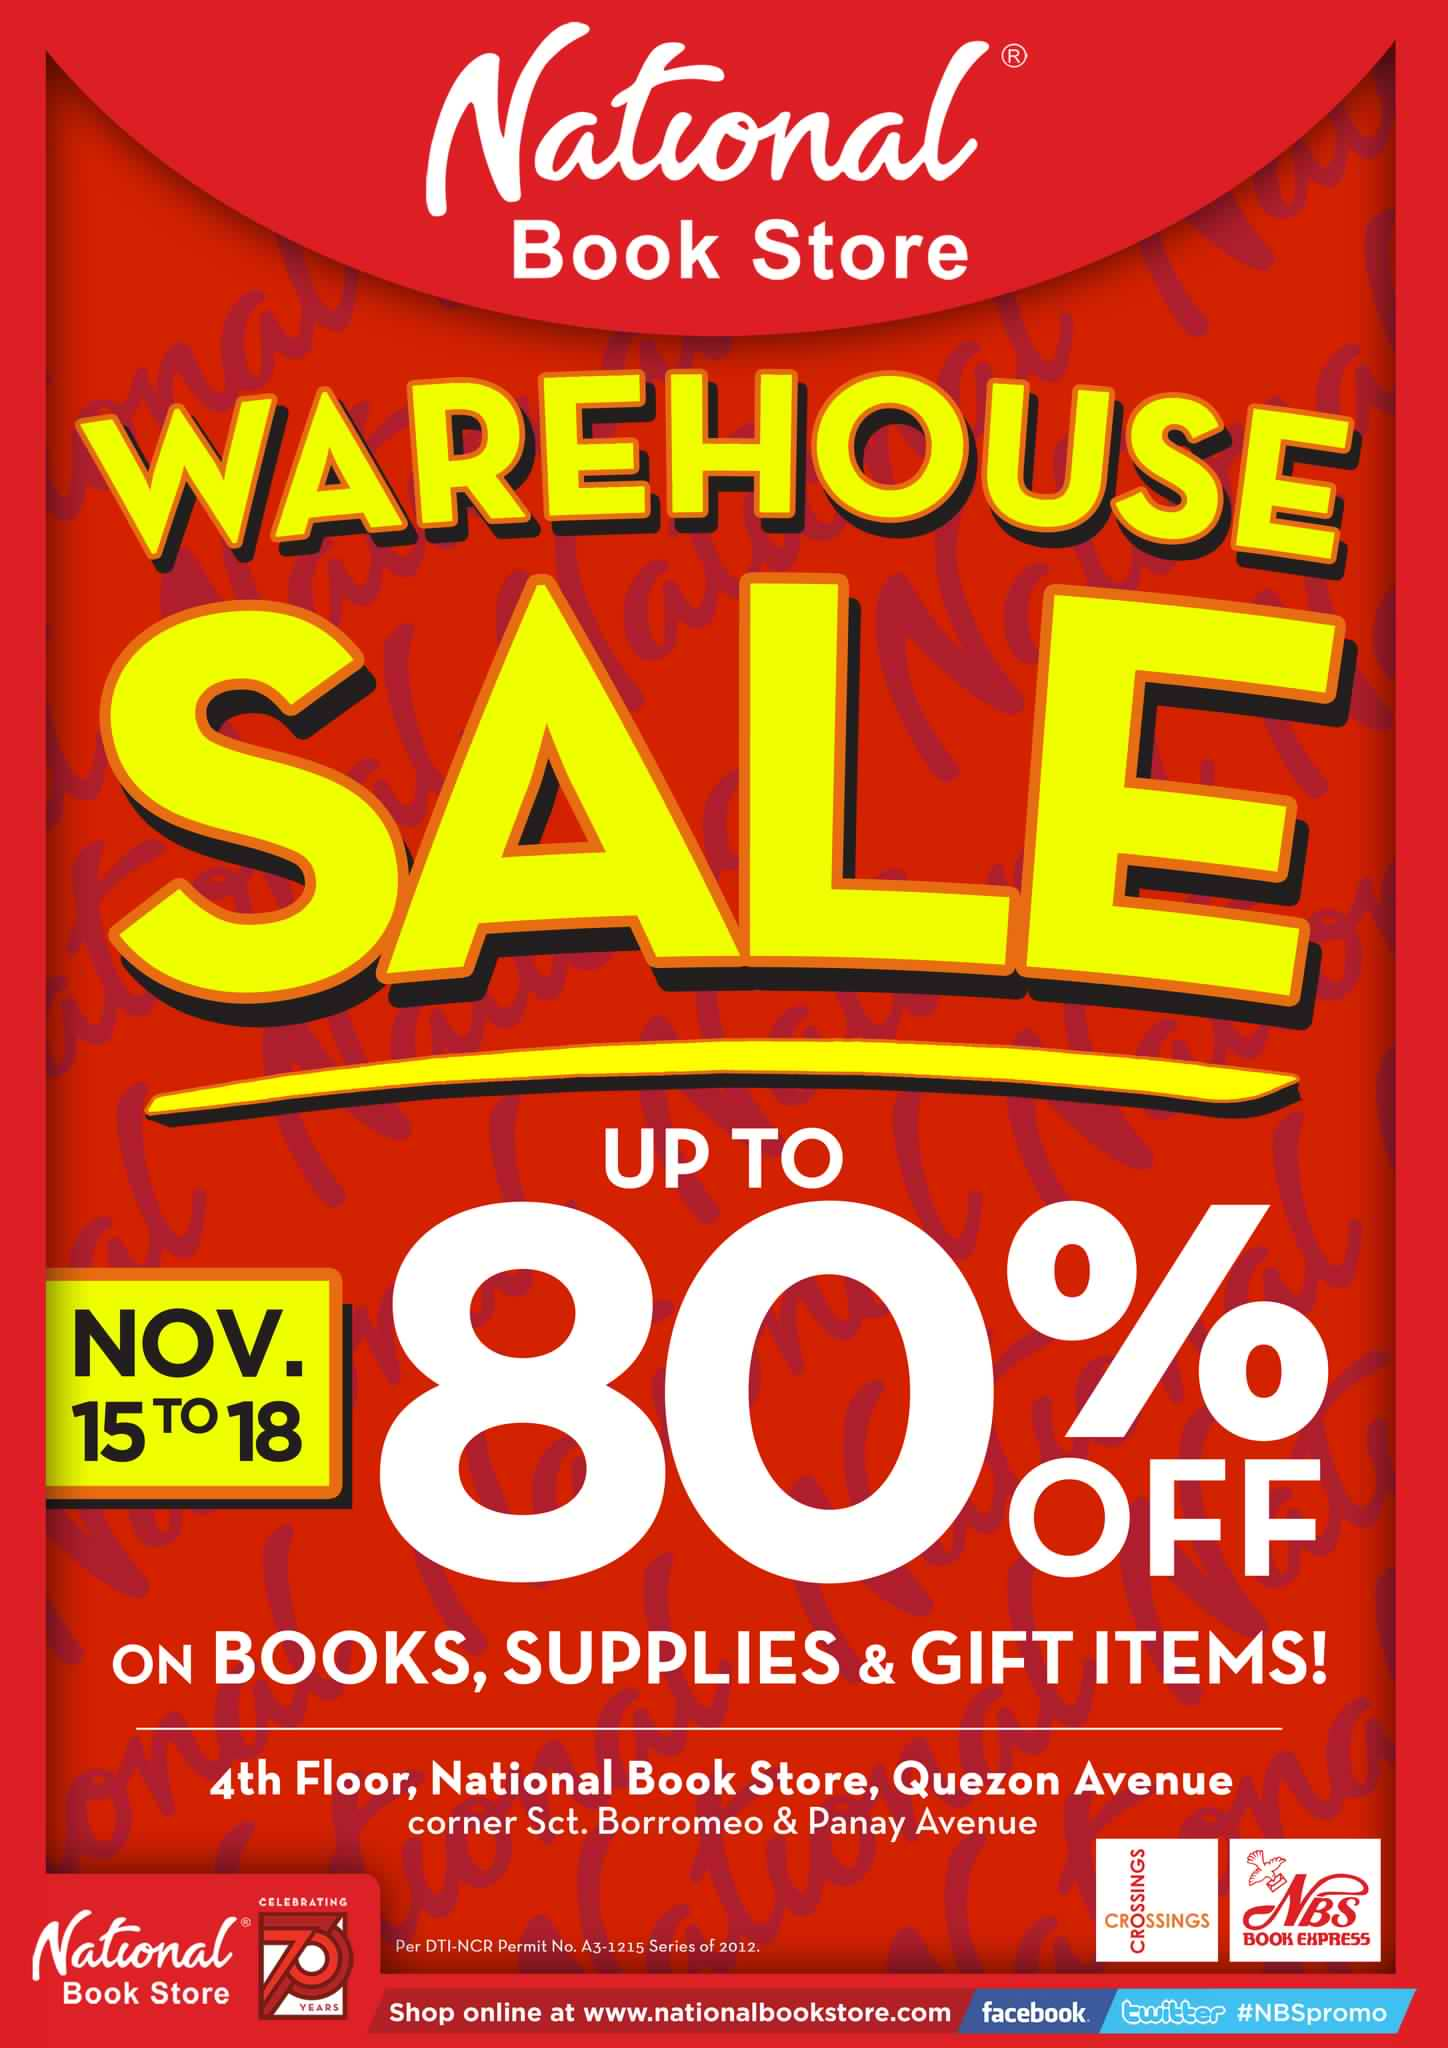 National Bookstore Warehouse Sale November 2012